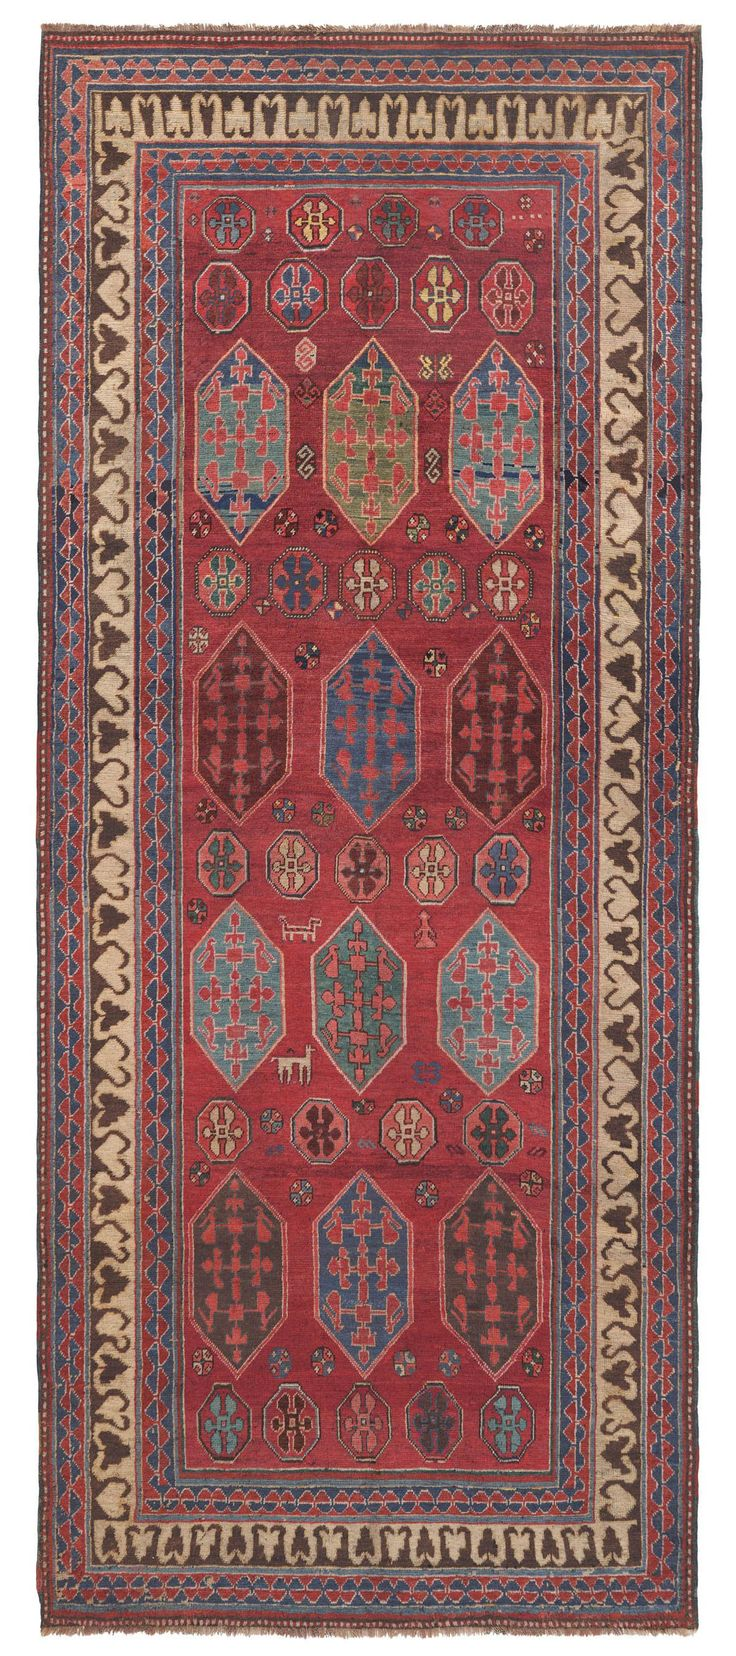 Best 25 Tribal rug ideas on Pinterest  Neutral rug